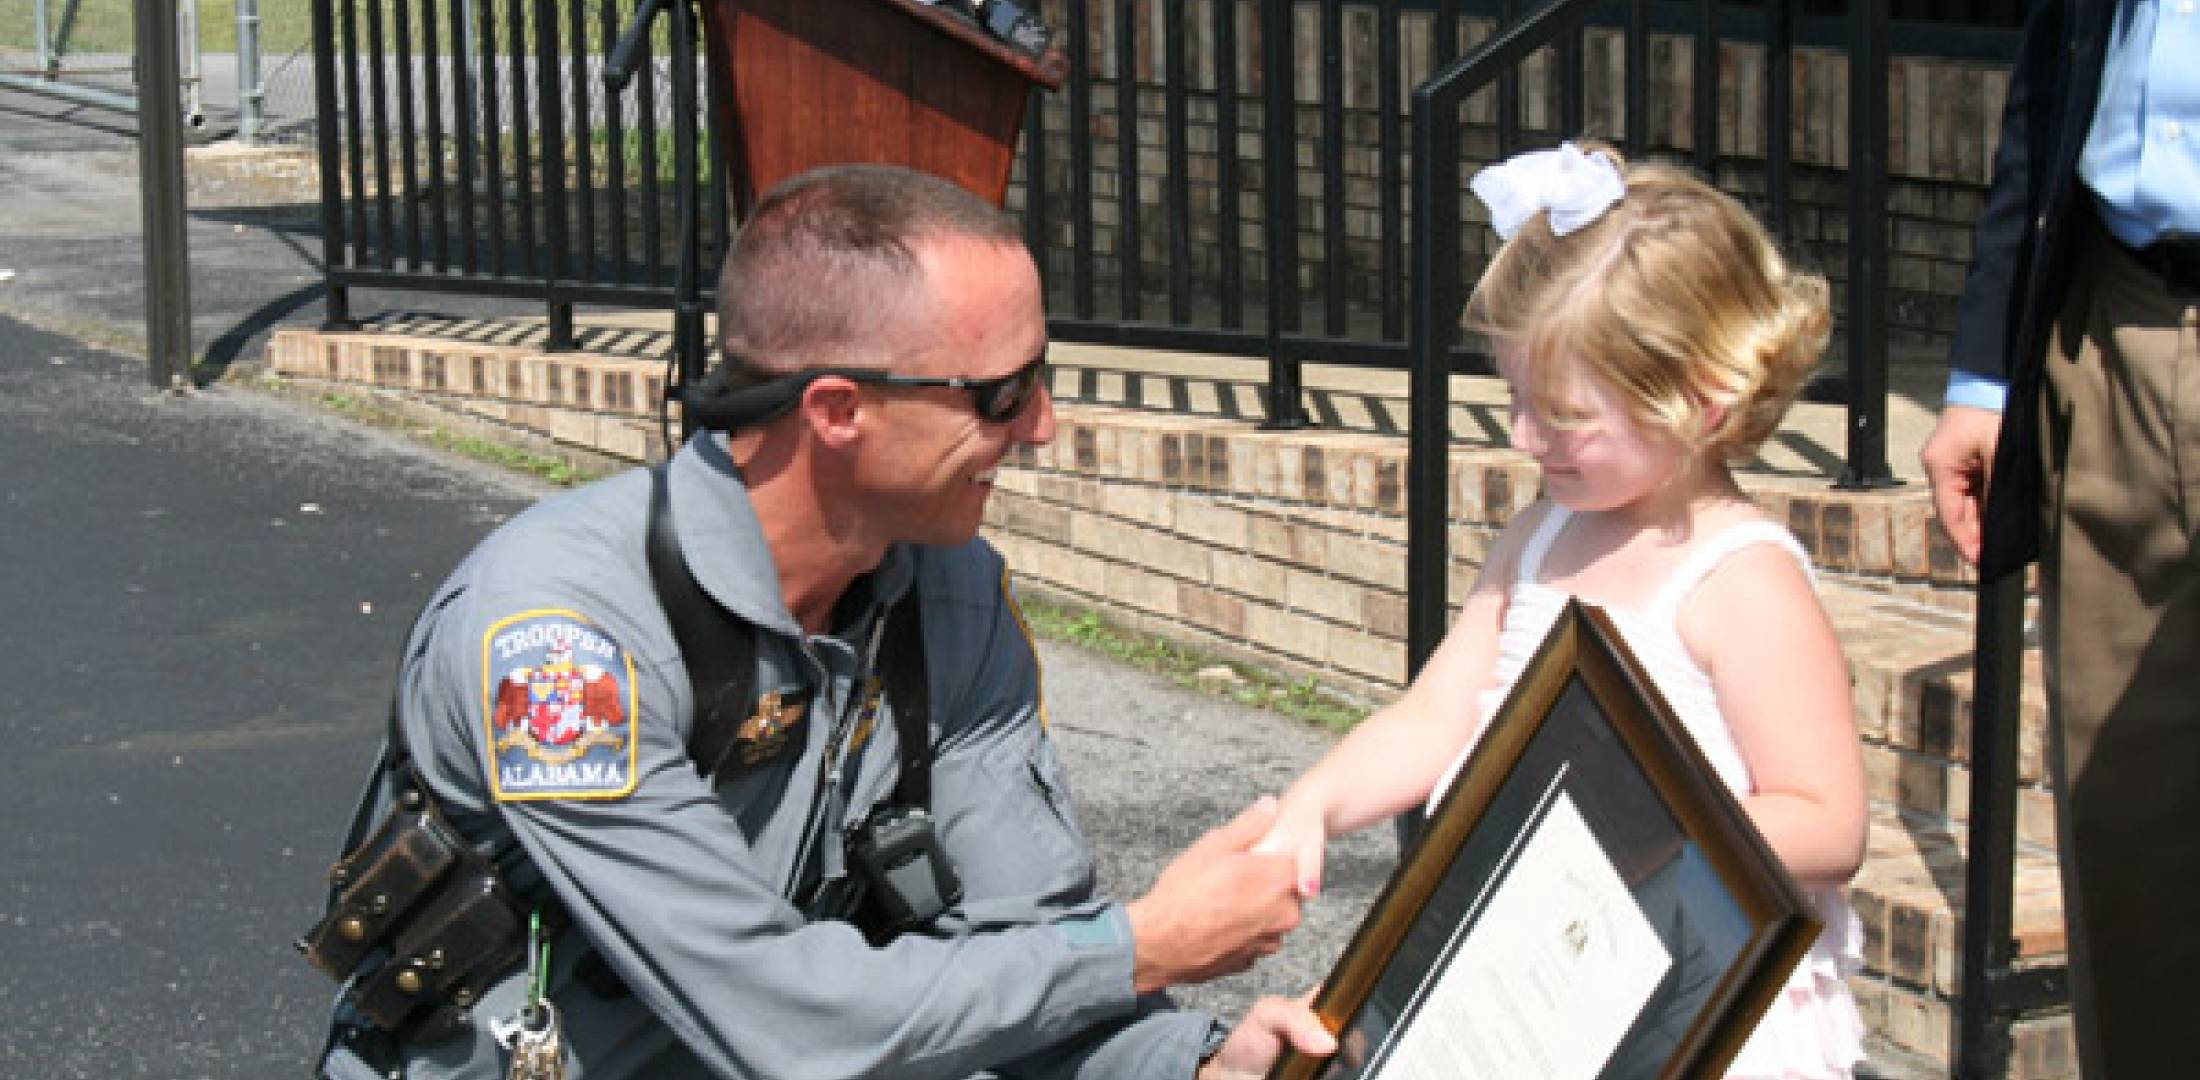 Pilot Lee Hamilton with the girl he rescued, Tori Hall. (Photo by Lisa Rogers/The Gadsen Times)